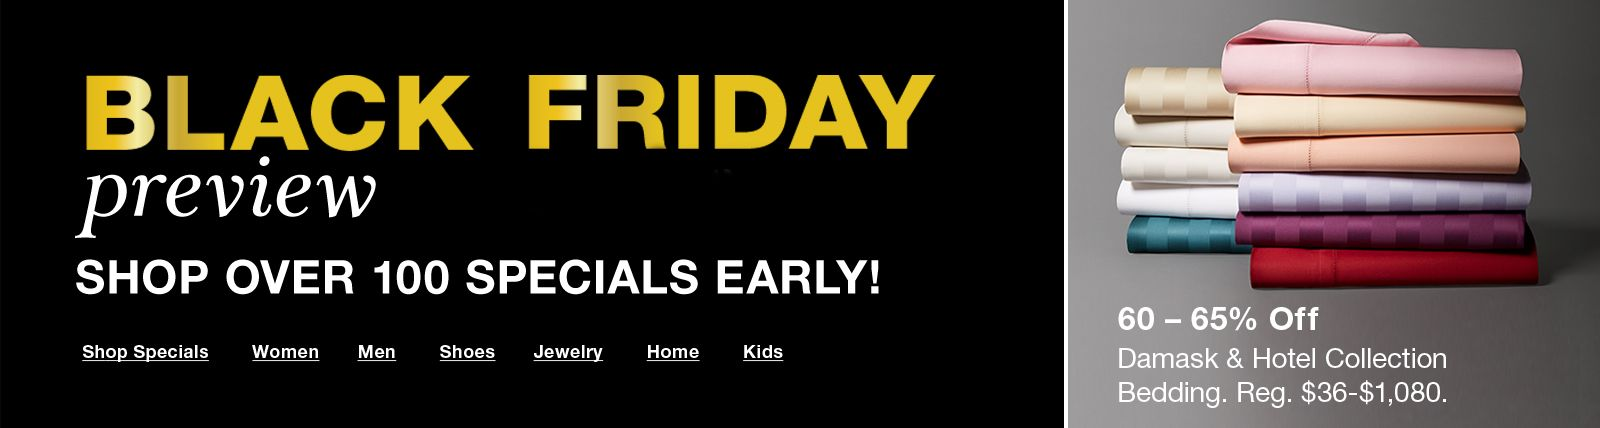 Black Friday, Preview, Shop Over 100 Specials Early! Shop Specials, Women, Men, Shoes, Jewelry, Home, Kids, 60 – 65 percent, Damask and Hotel Collection Bedding